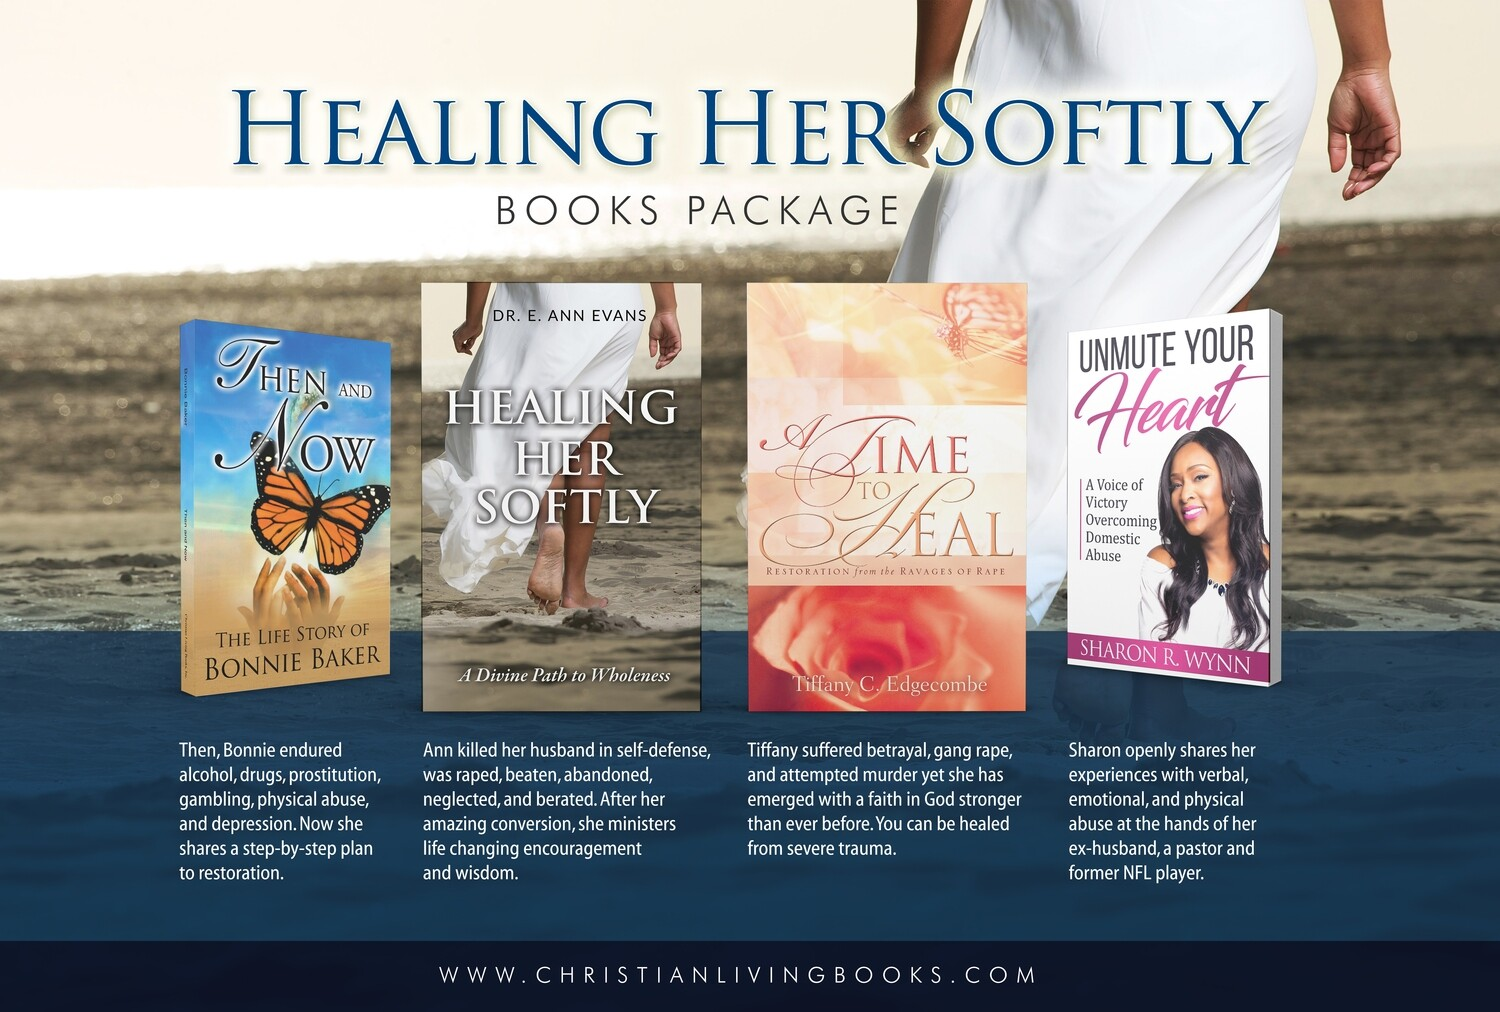 Healing Her Softly Books Package